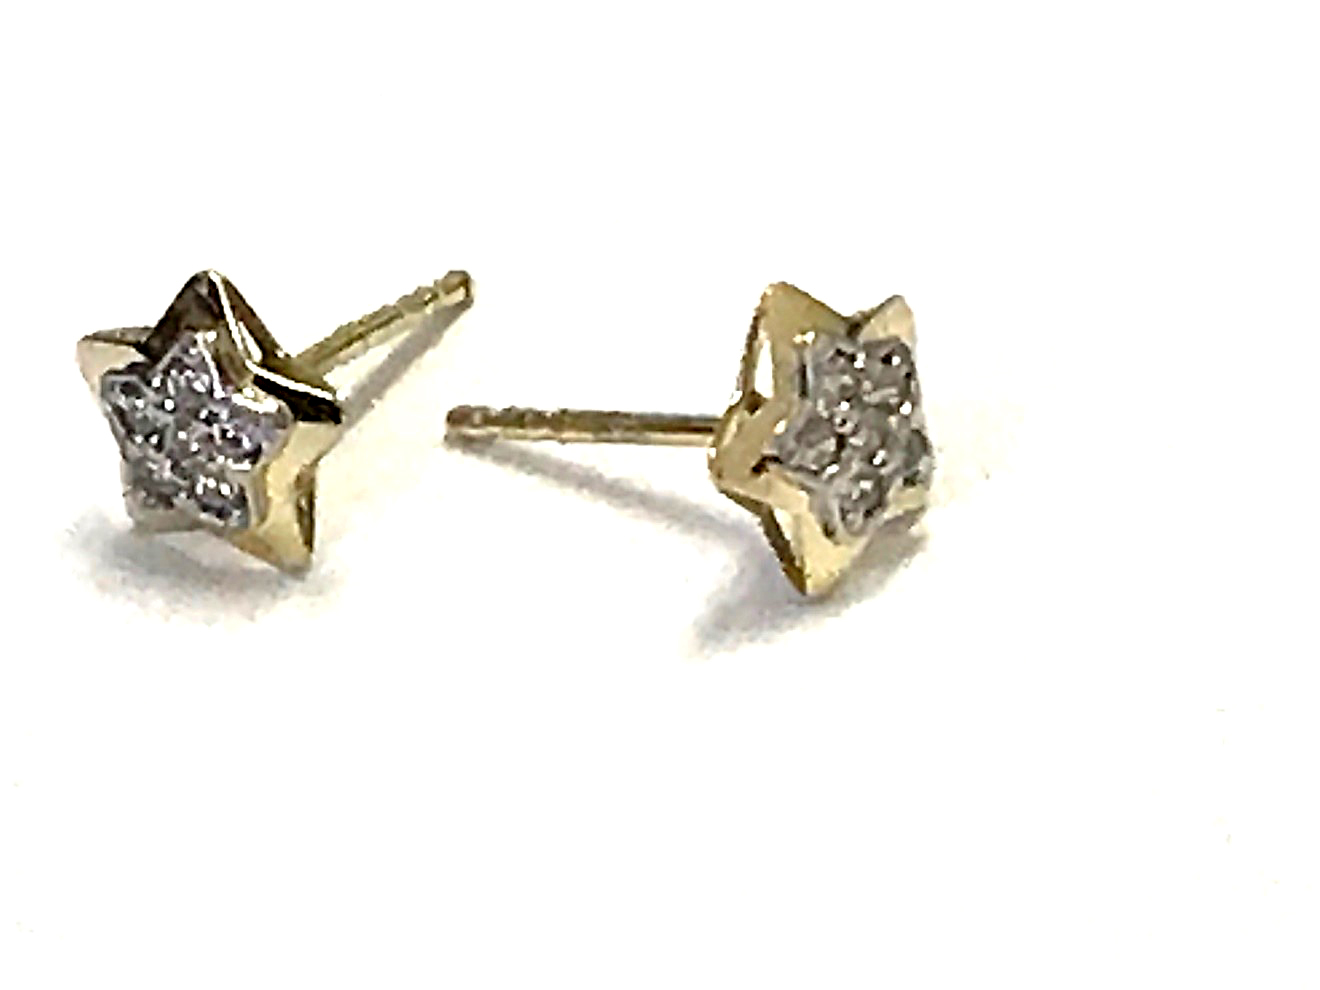 Star earrings - 10K yellow gold & Cubic zirconia